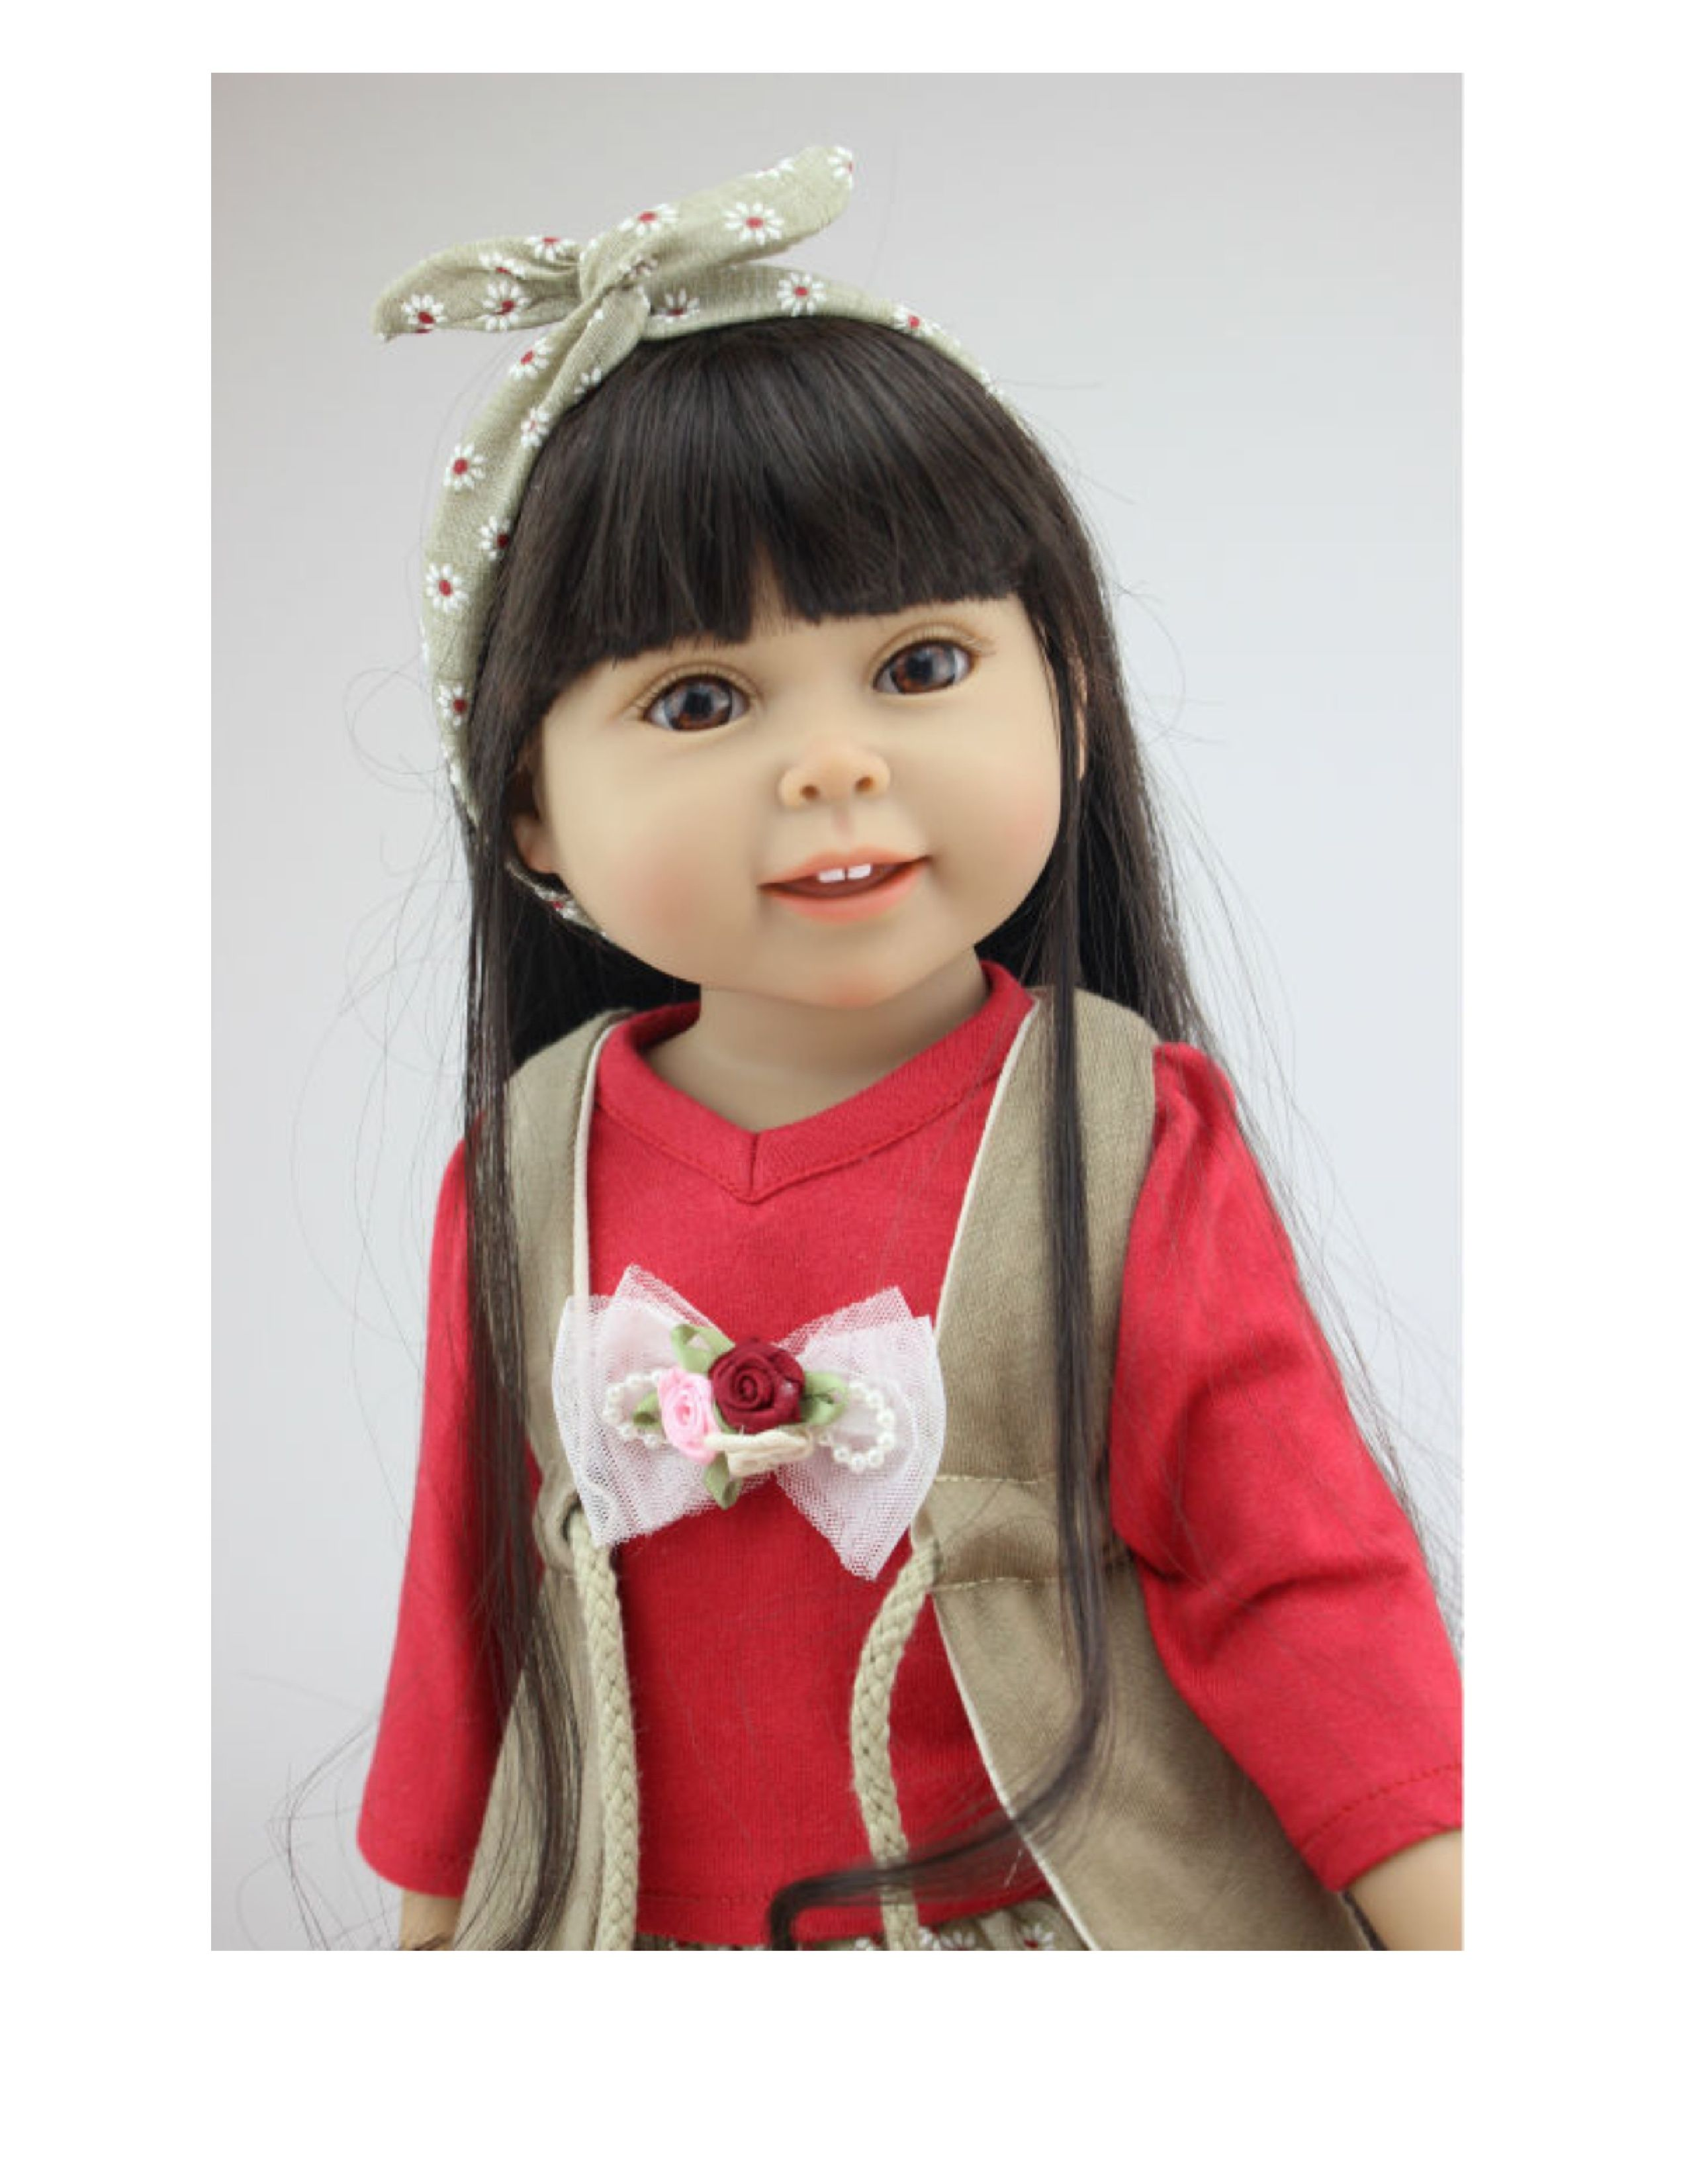 """New 18"""" vinyl doll arrivals at www.harmonyclubdolls.com Realistic eyes, vinyl, and silky kanekalon re-styleable wigged hair. Size of American Girl."""